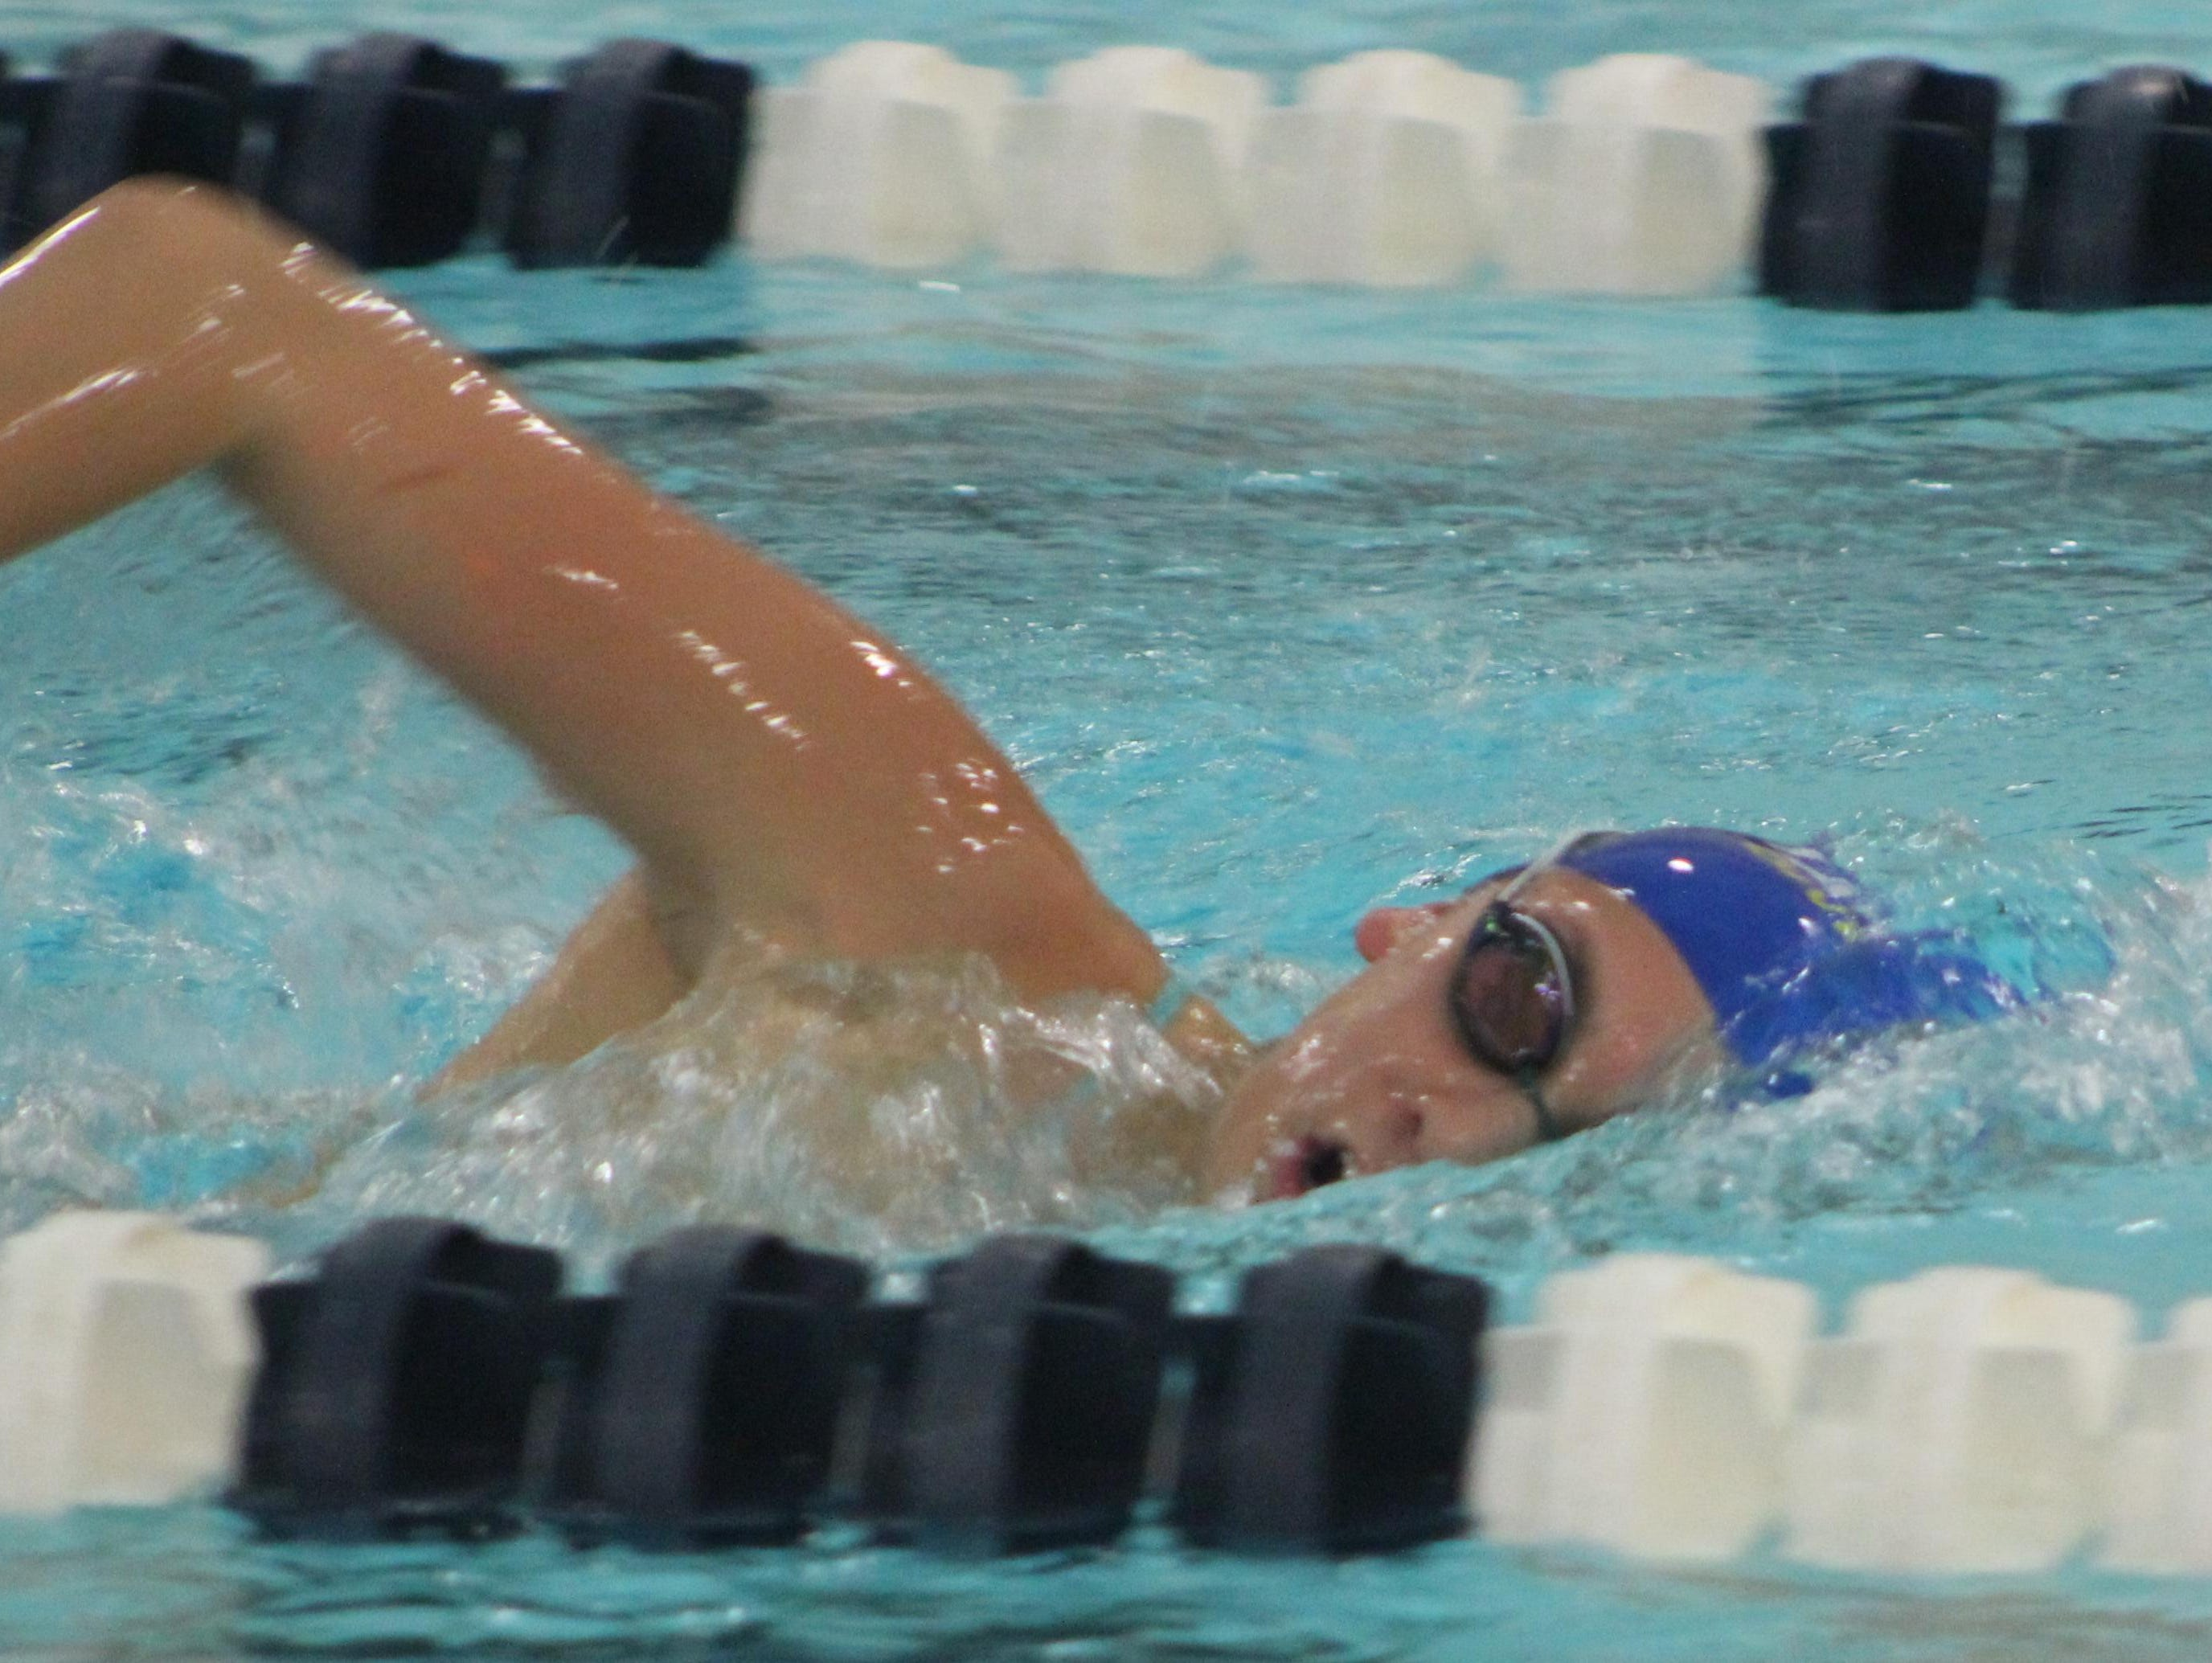 Marian junior Sophia Schott proved the state's fastest swimmer with a personal-best time of 22.99 in winning the Division 2 50-yard freestyle. It was the best 50 free time of the three recent state championship meets.